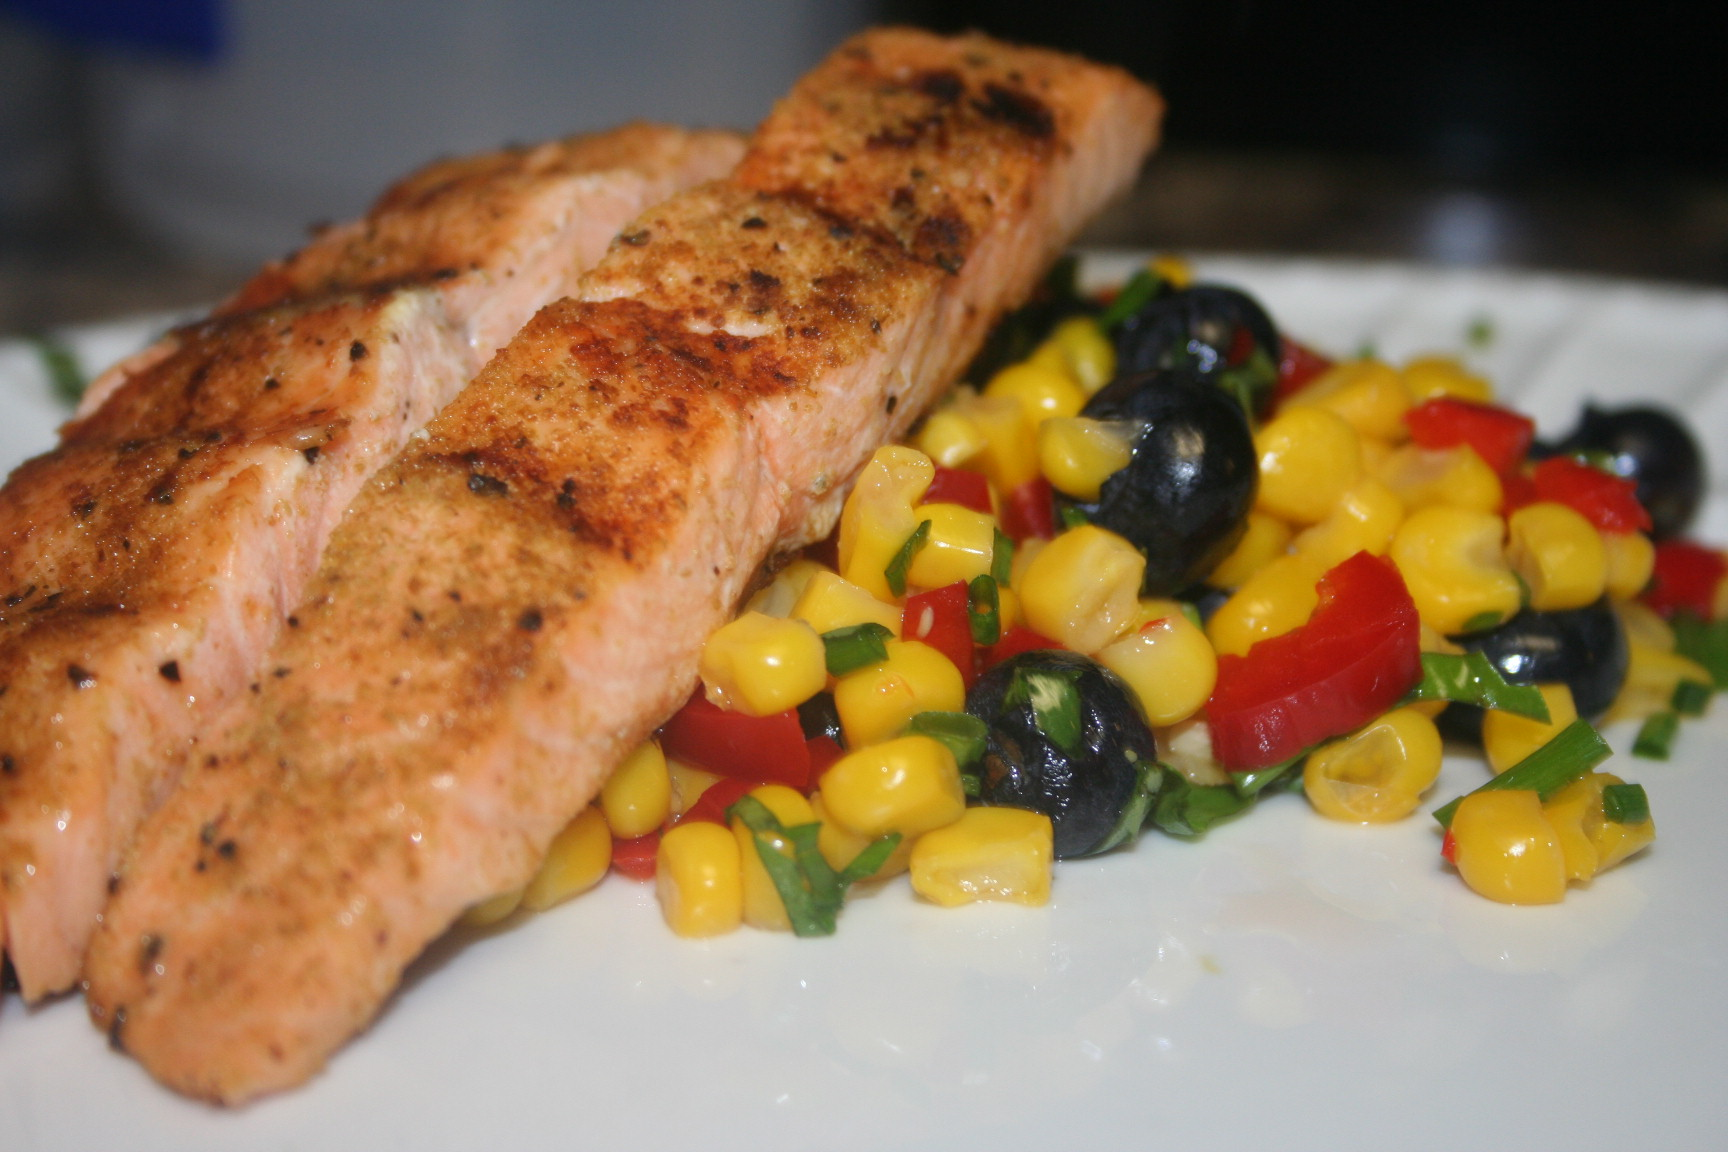 I Used My George Foreman Grill To Cook The Salmon So It Took Far Less Time  That If I Had Cooked It On A Charcoal Grill